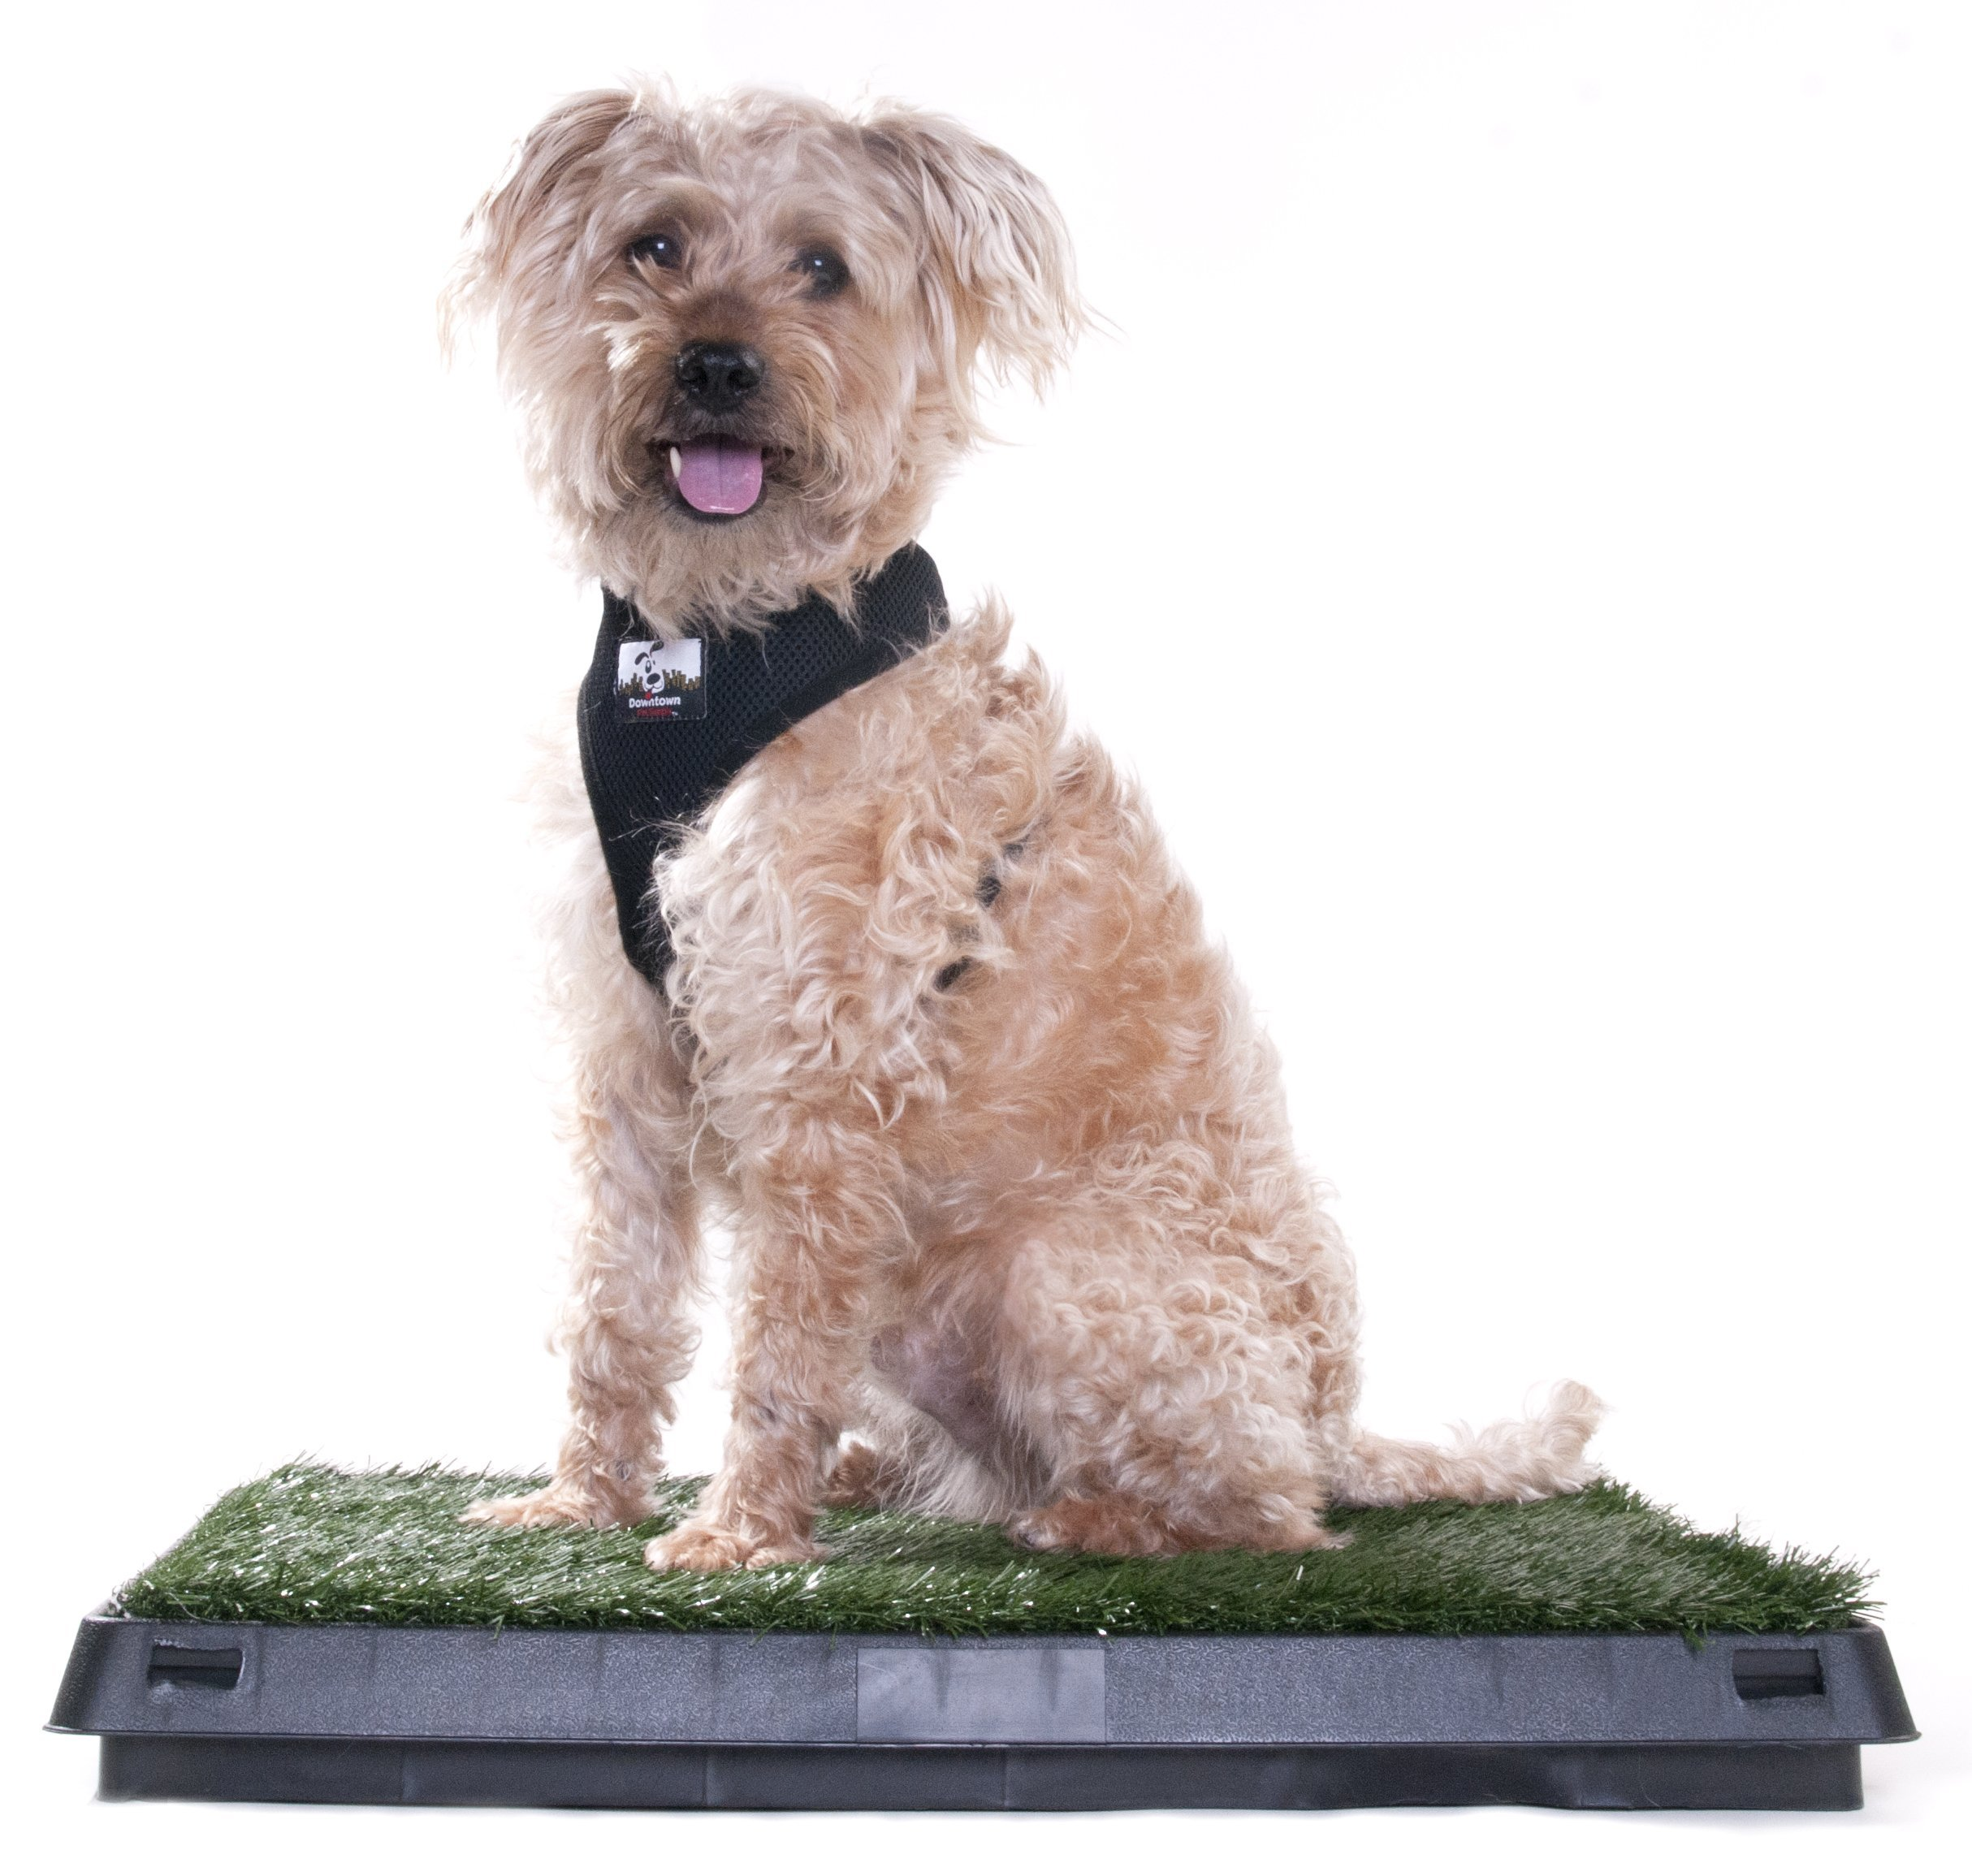 Downtown Pet Supply Dog Pee Potty Pad, Bathroom Tinkle Artificial Grass Turf, Portable Potty Trainer (20 x 25 inches with Drawer) by Downtown Pet Supply (Image #7)